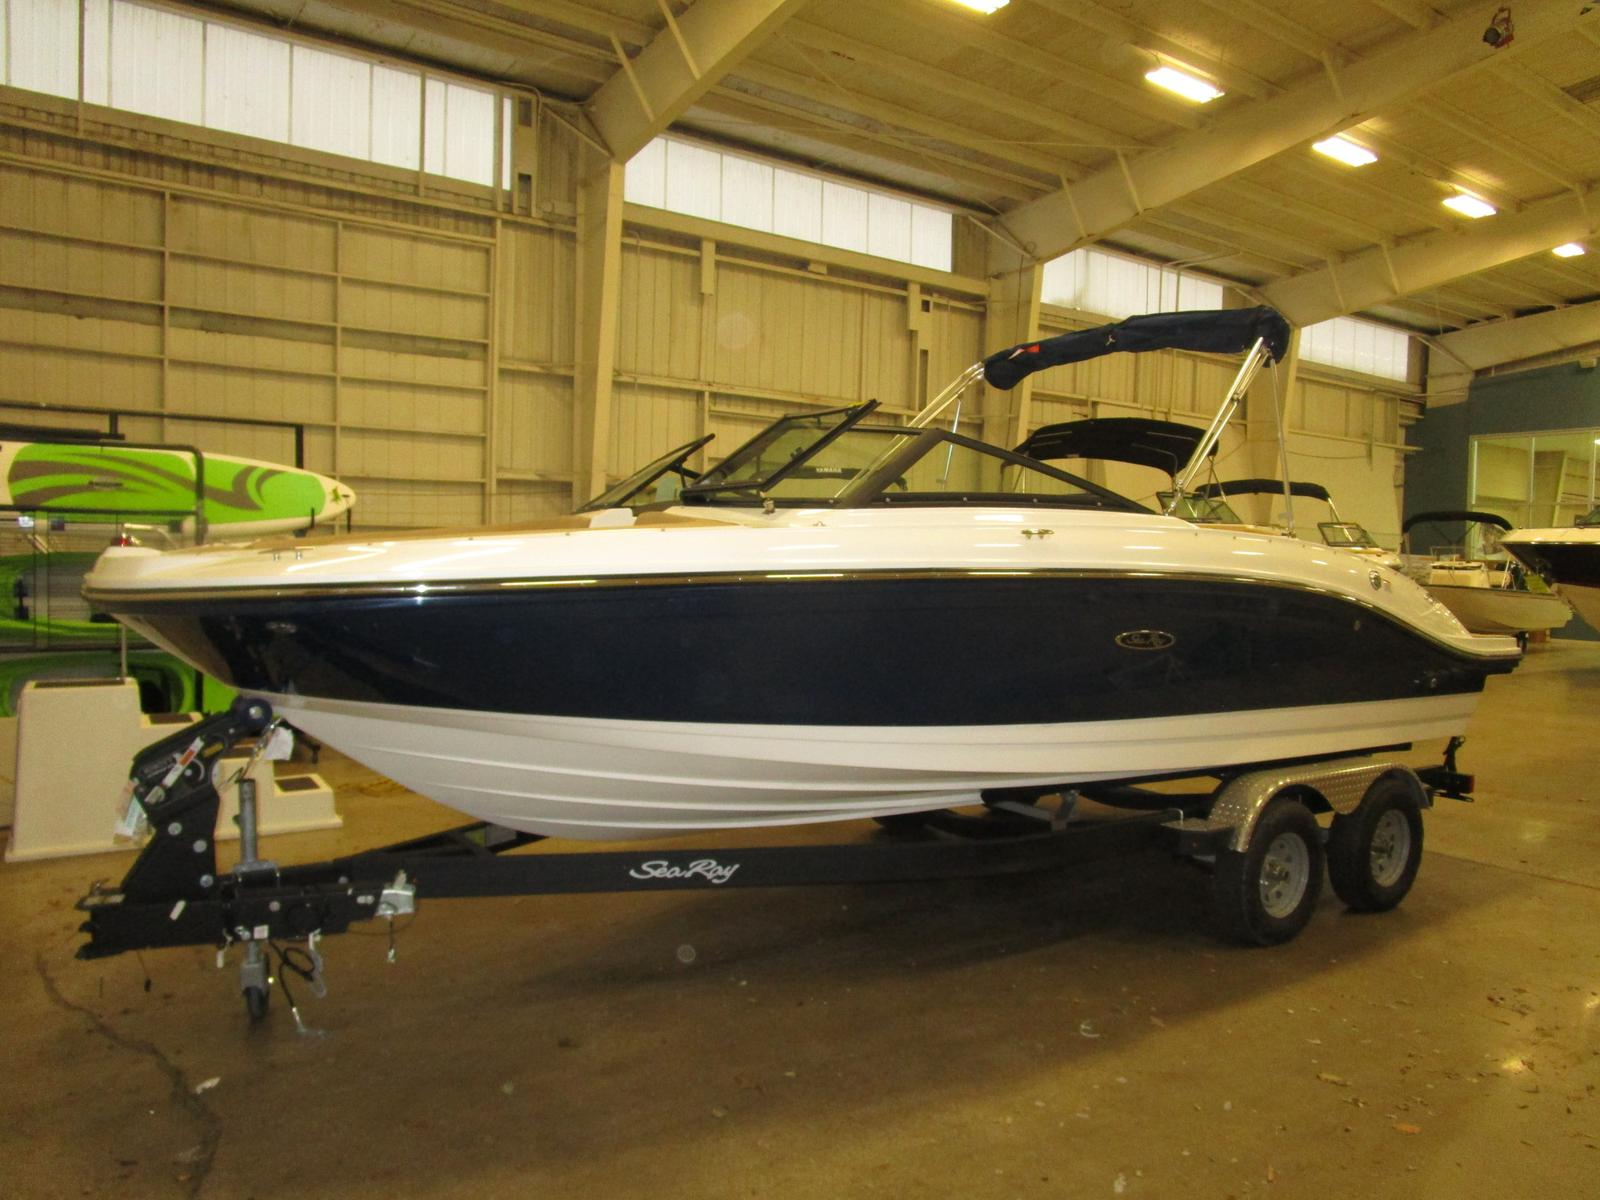 2019 Sea Ray boat for sale, model of the boat is SPX 210 & Image # 1 of 7